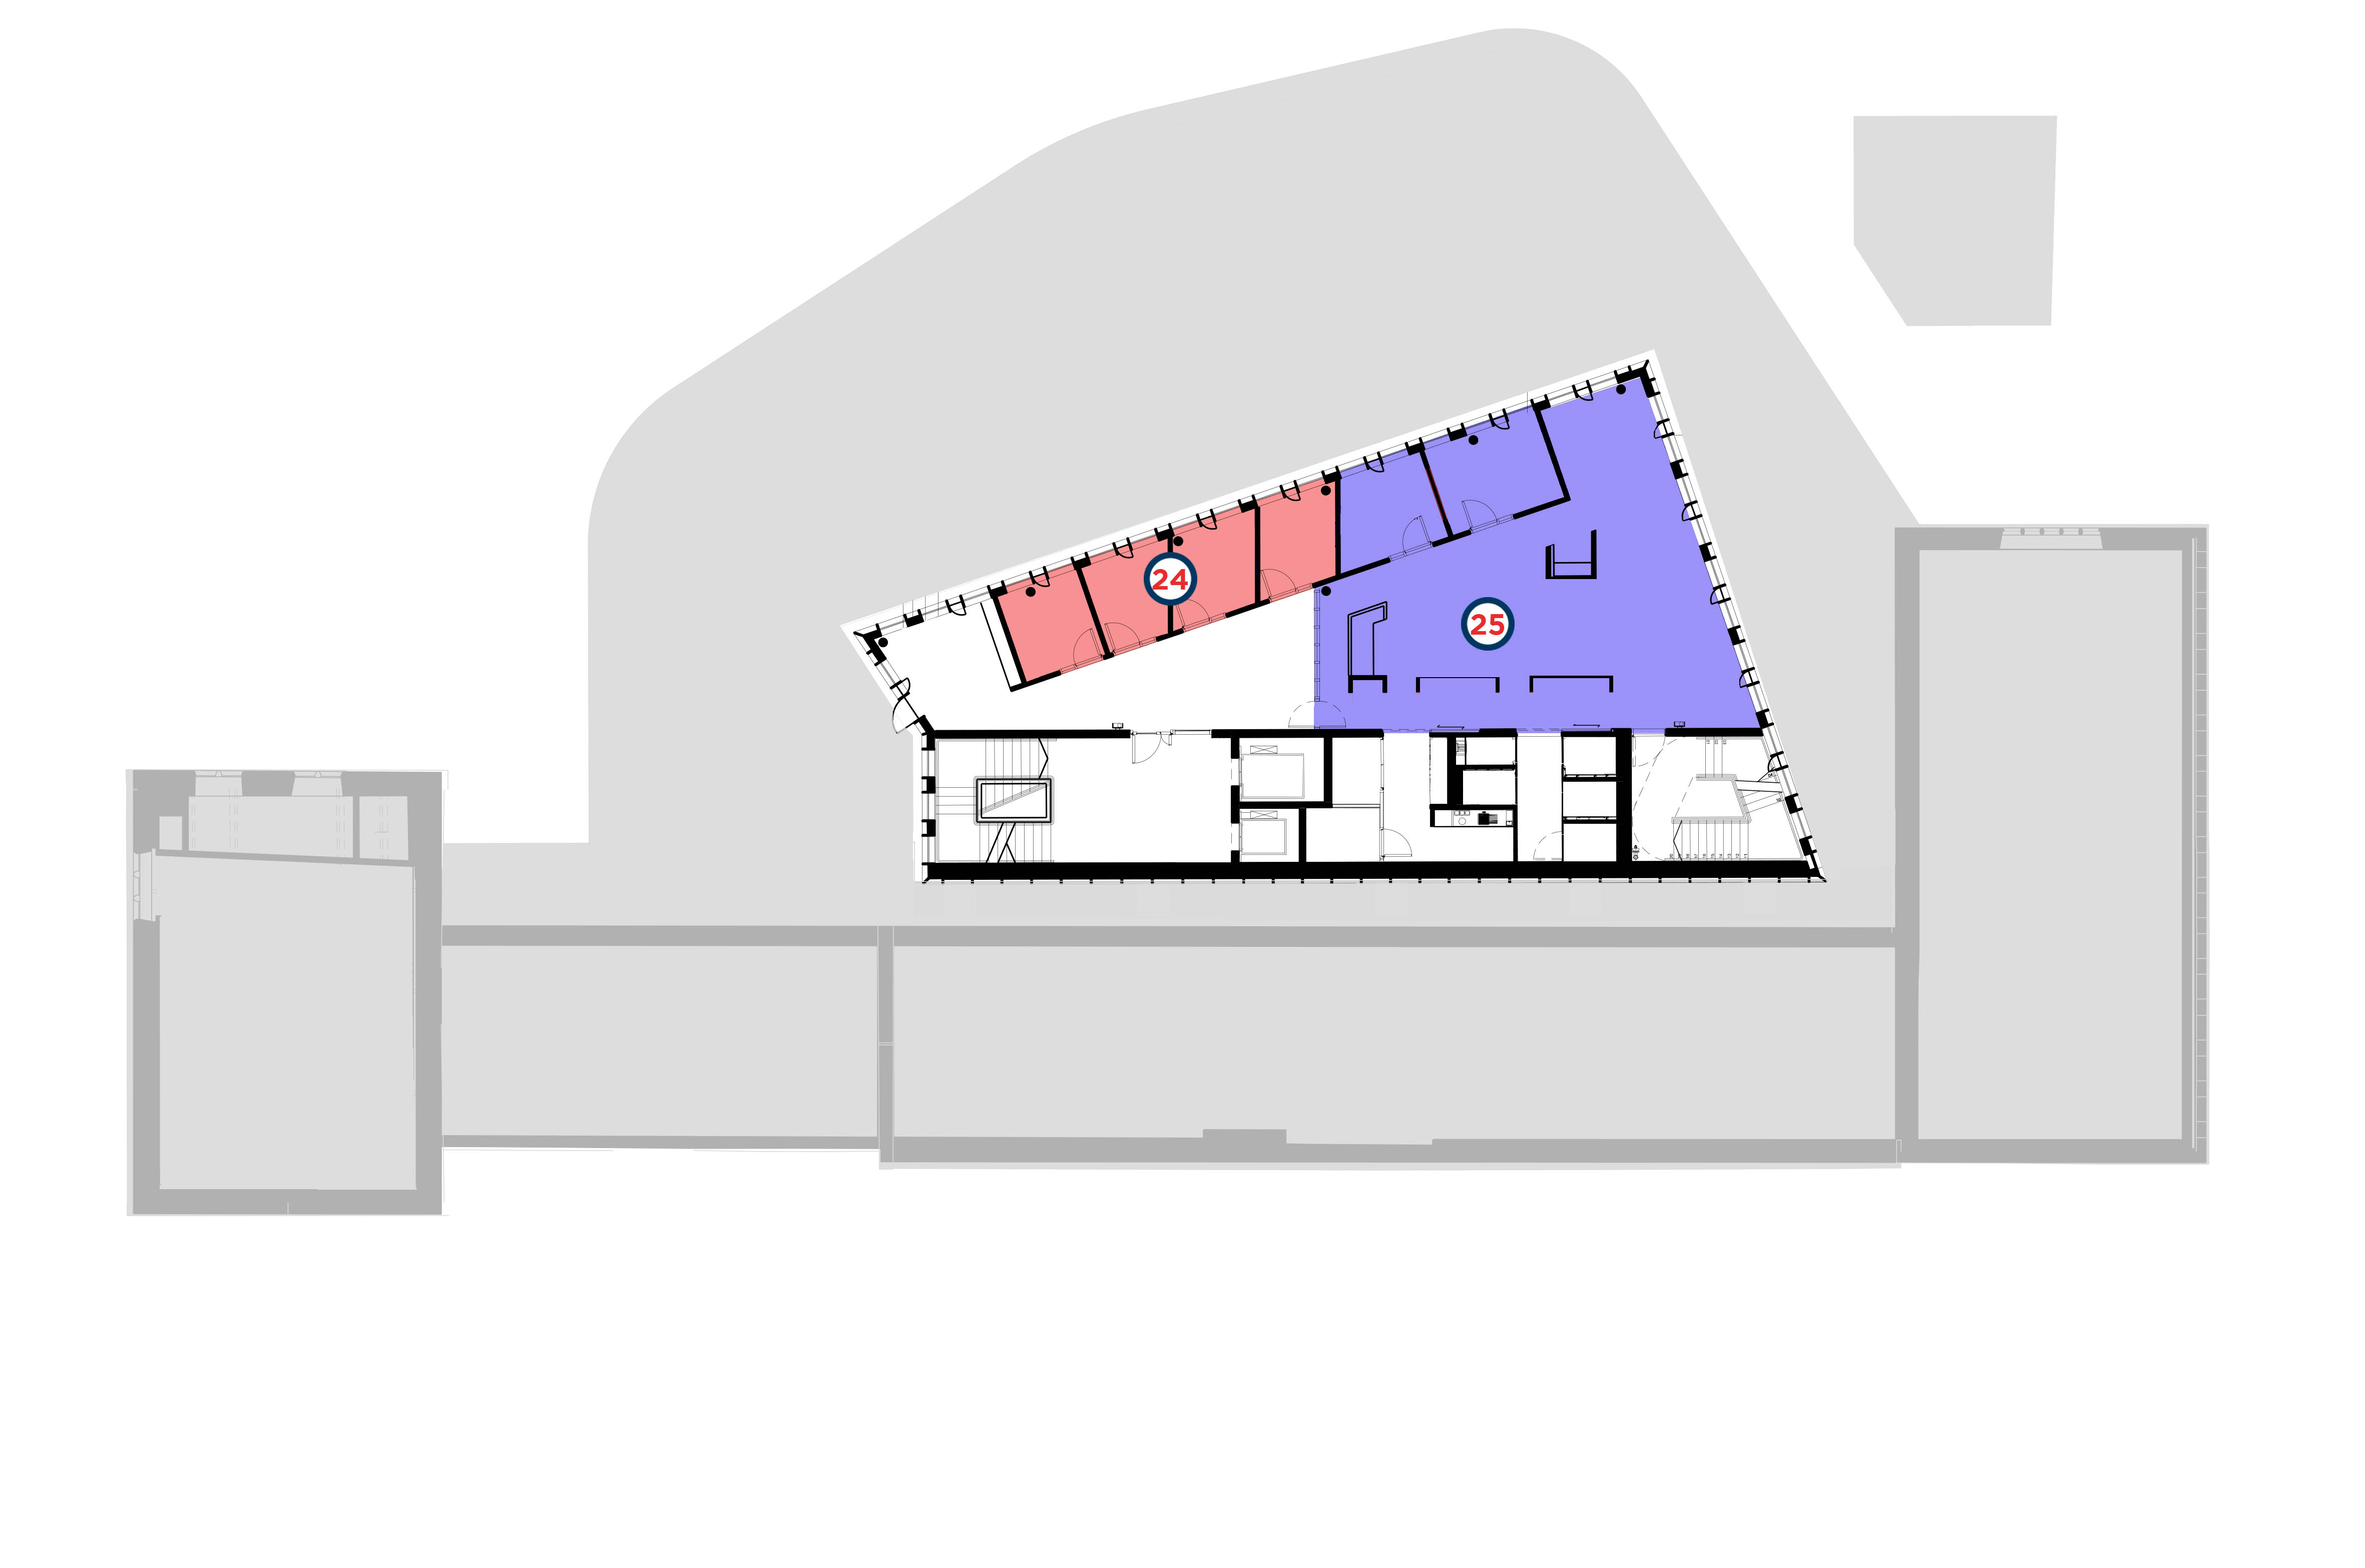 Layout floor plan for the Second Floor of the Hub